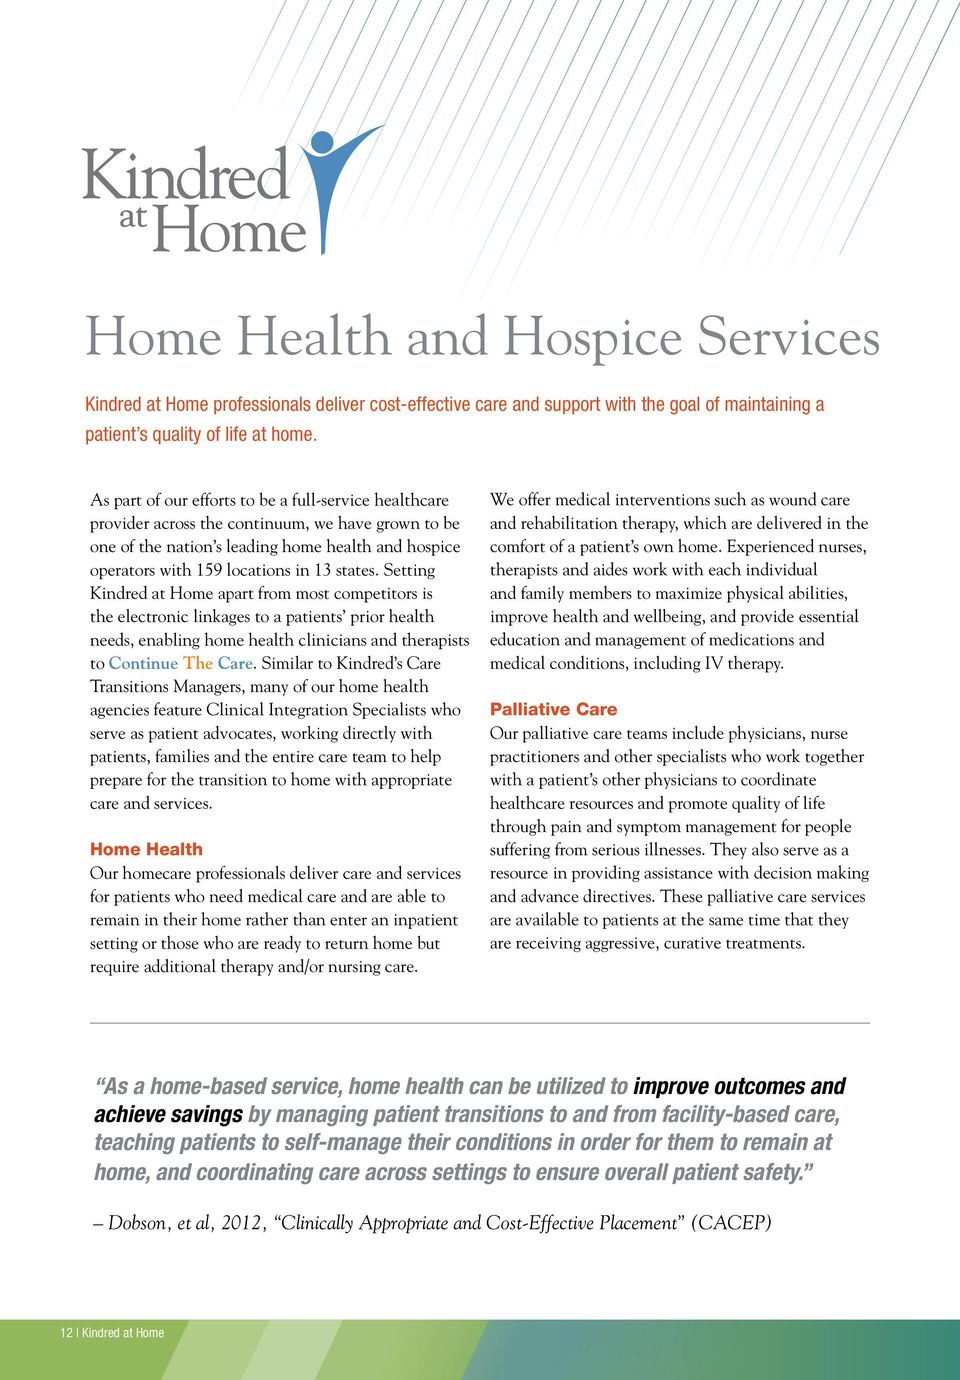 Setting Kindred at Home apart from most competitors is the electronic linkages to a patients prior health needs, enabling home health clinicians and therapists to Continue The Care.